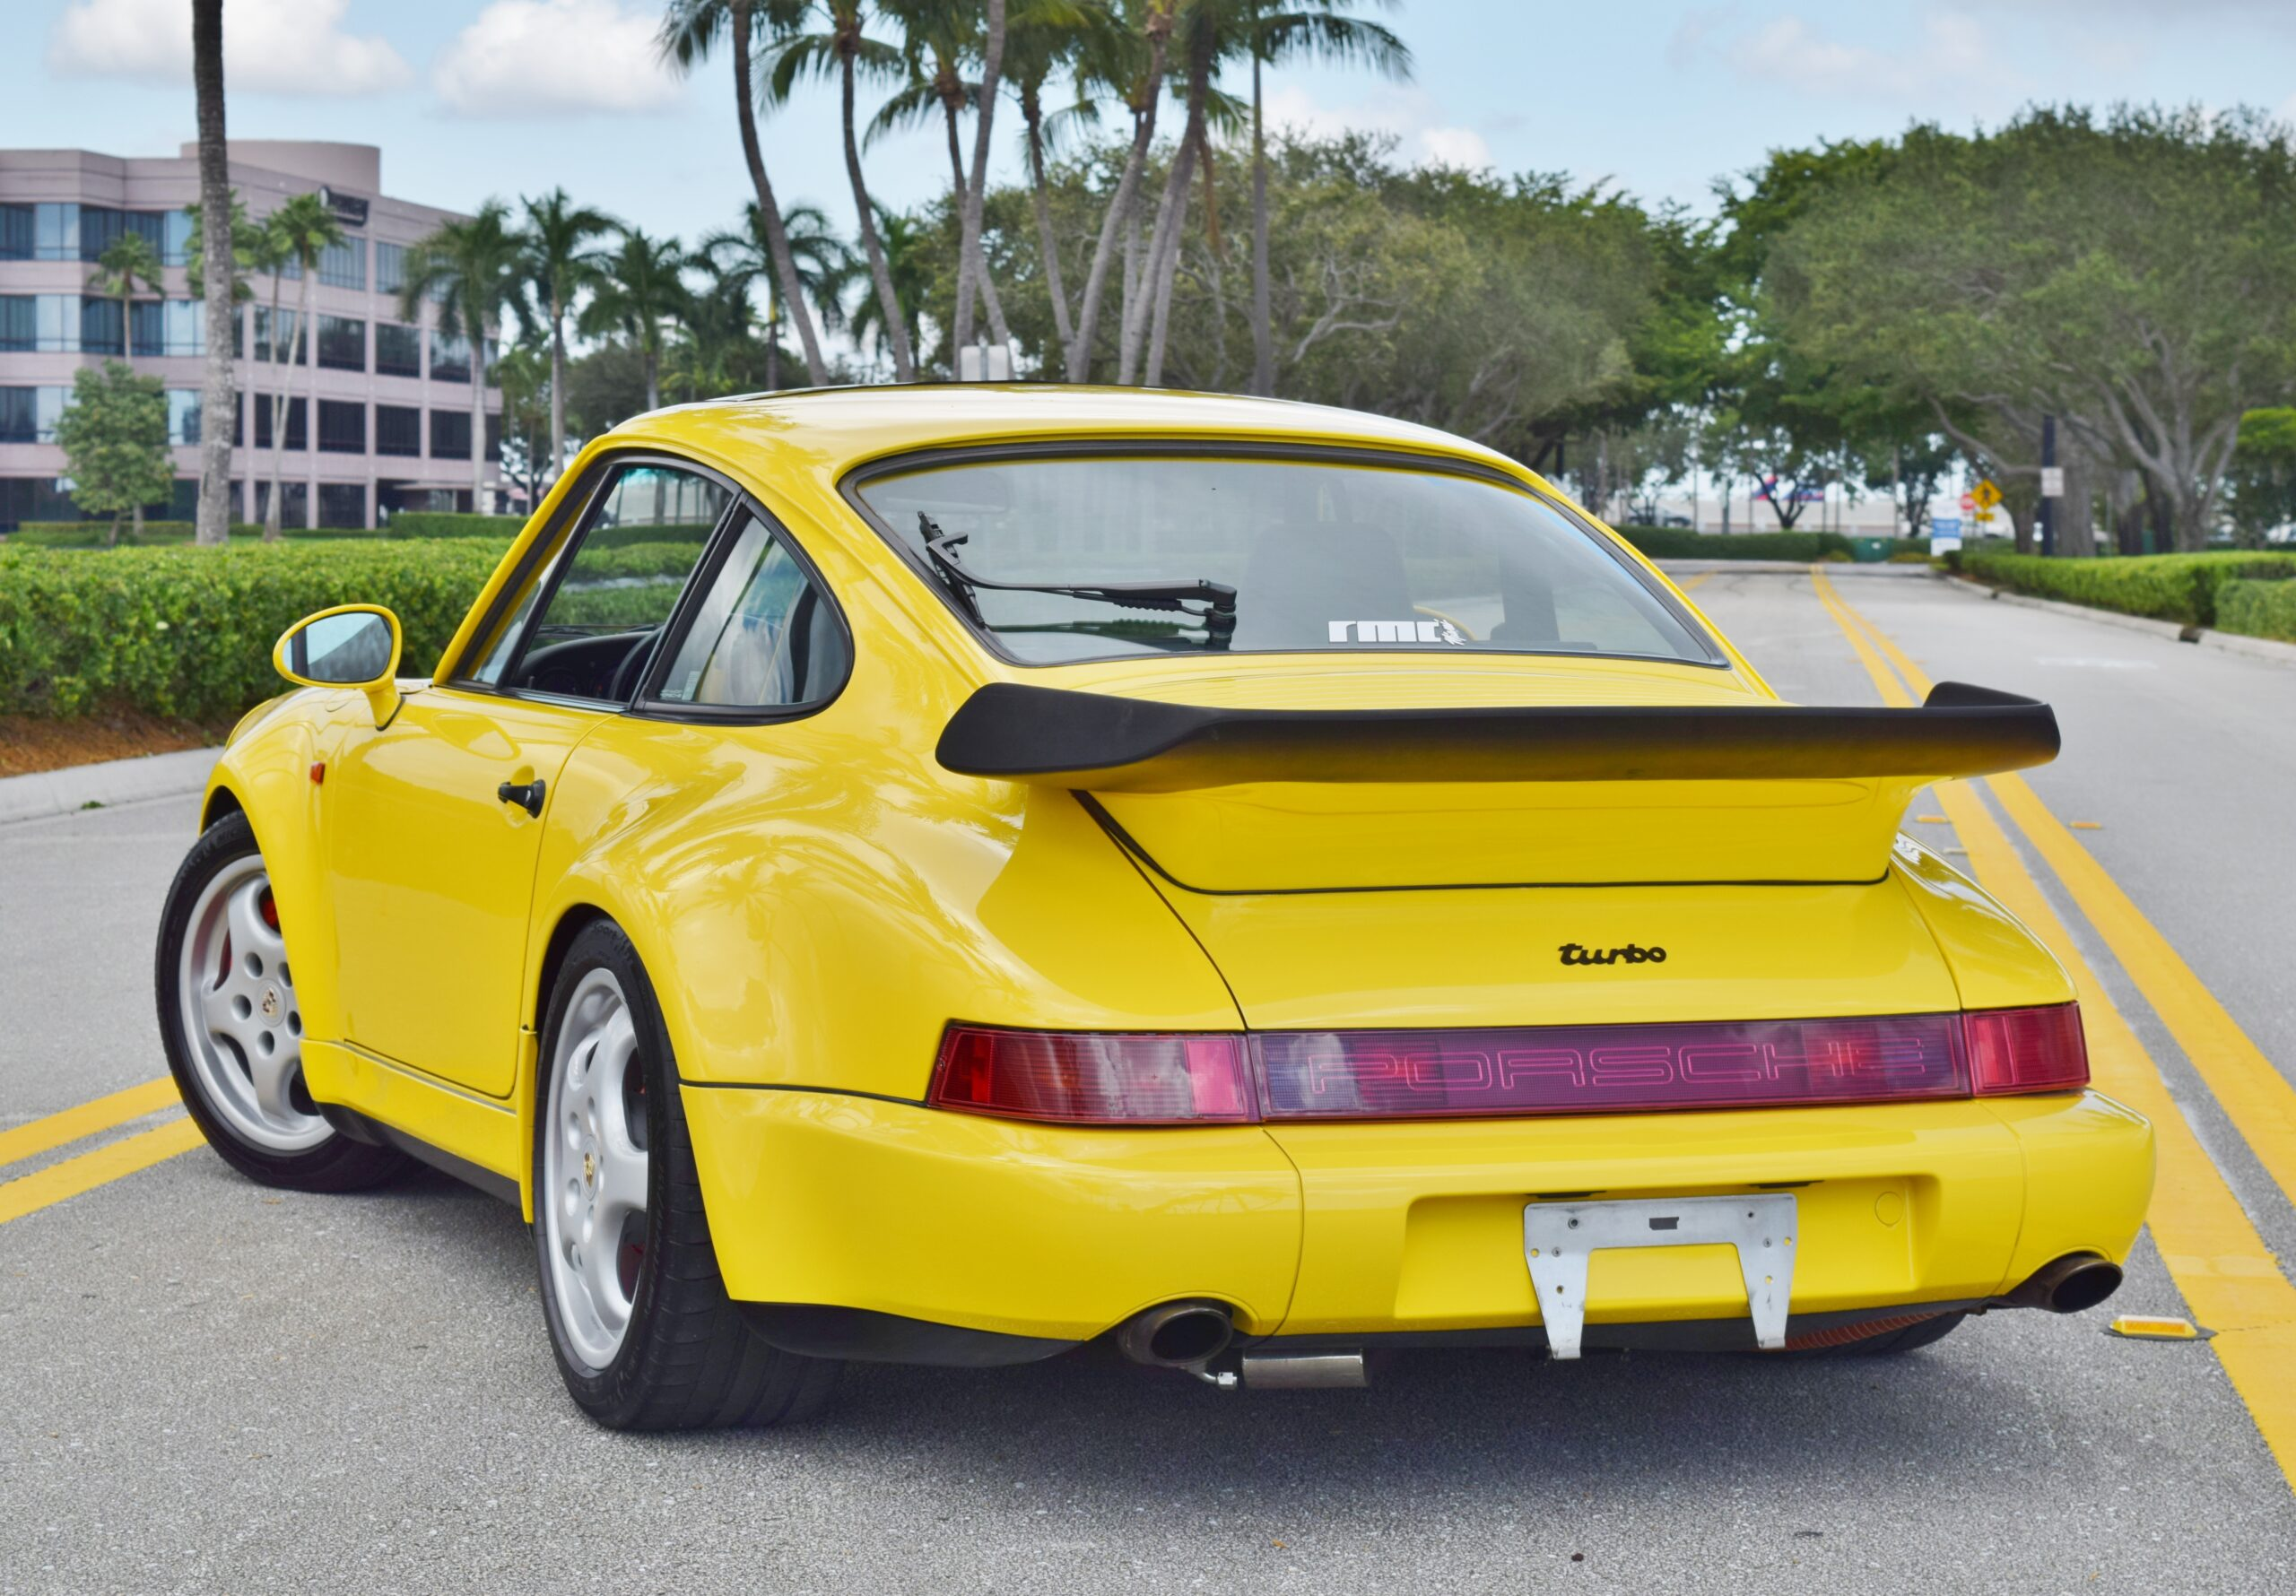 1991 Porsche 911 Turbo 964 Paint to Sample Ferrari Yellow/ Only 61K Miles/ Matching Numbers/ Engine Refresh